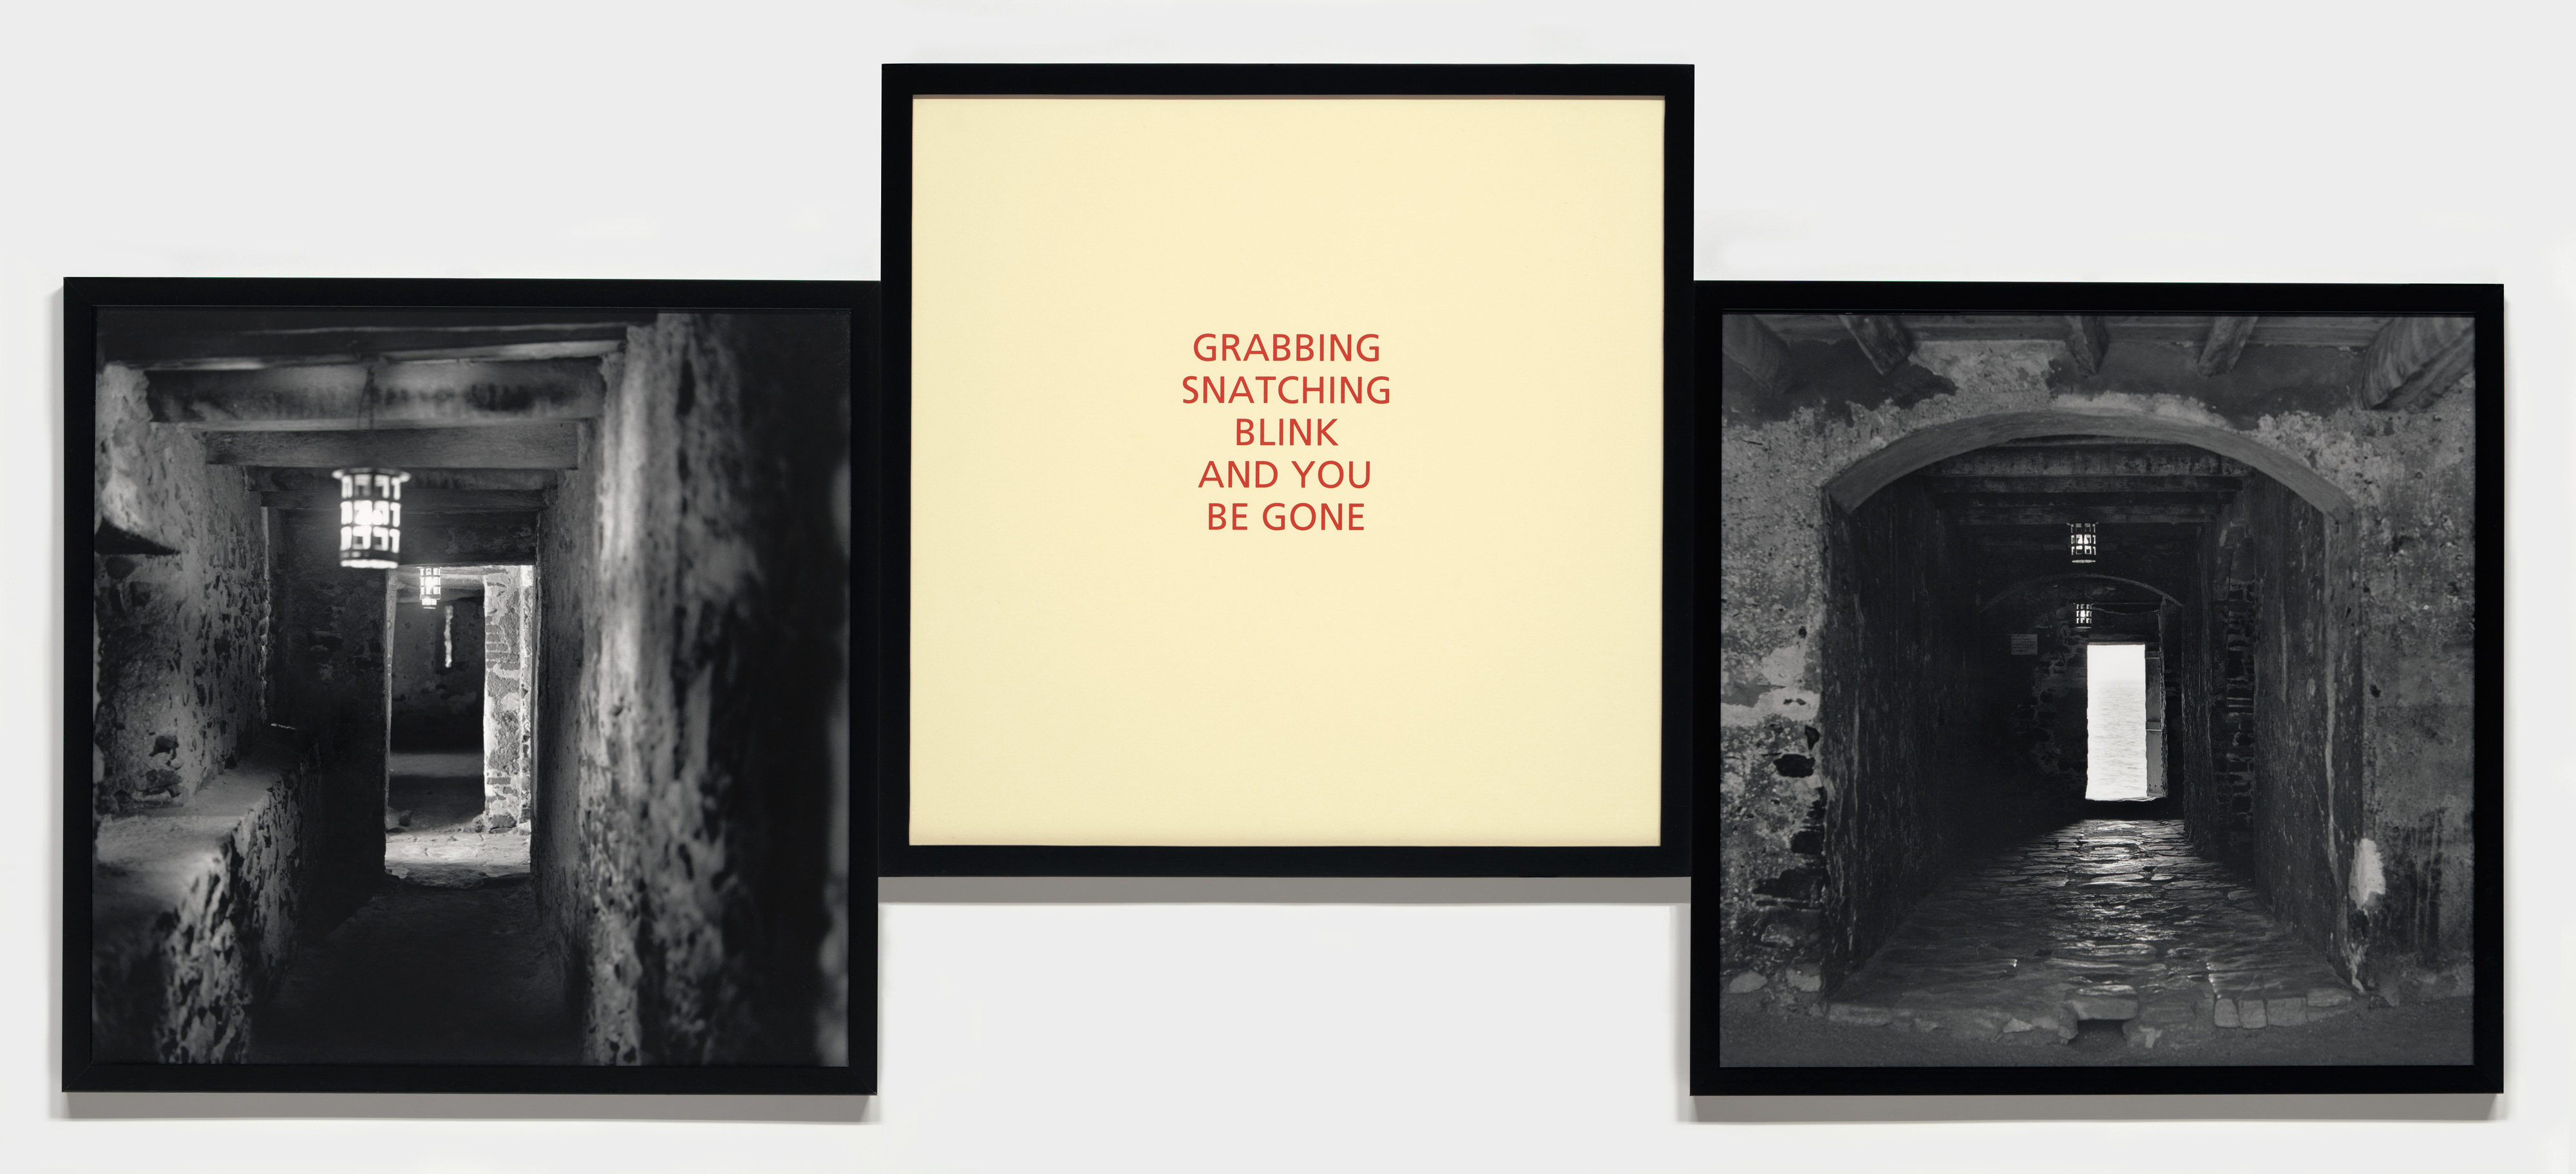 Galerie Barbara Thumm \ Carrie Mae Weems: Grabbing Snatching Blink and You Be Gone (CMW-93-010) \ Grabbing Snatching Blink and You Be Gone (1993)